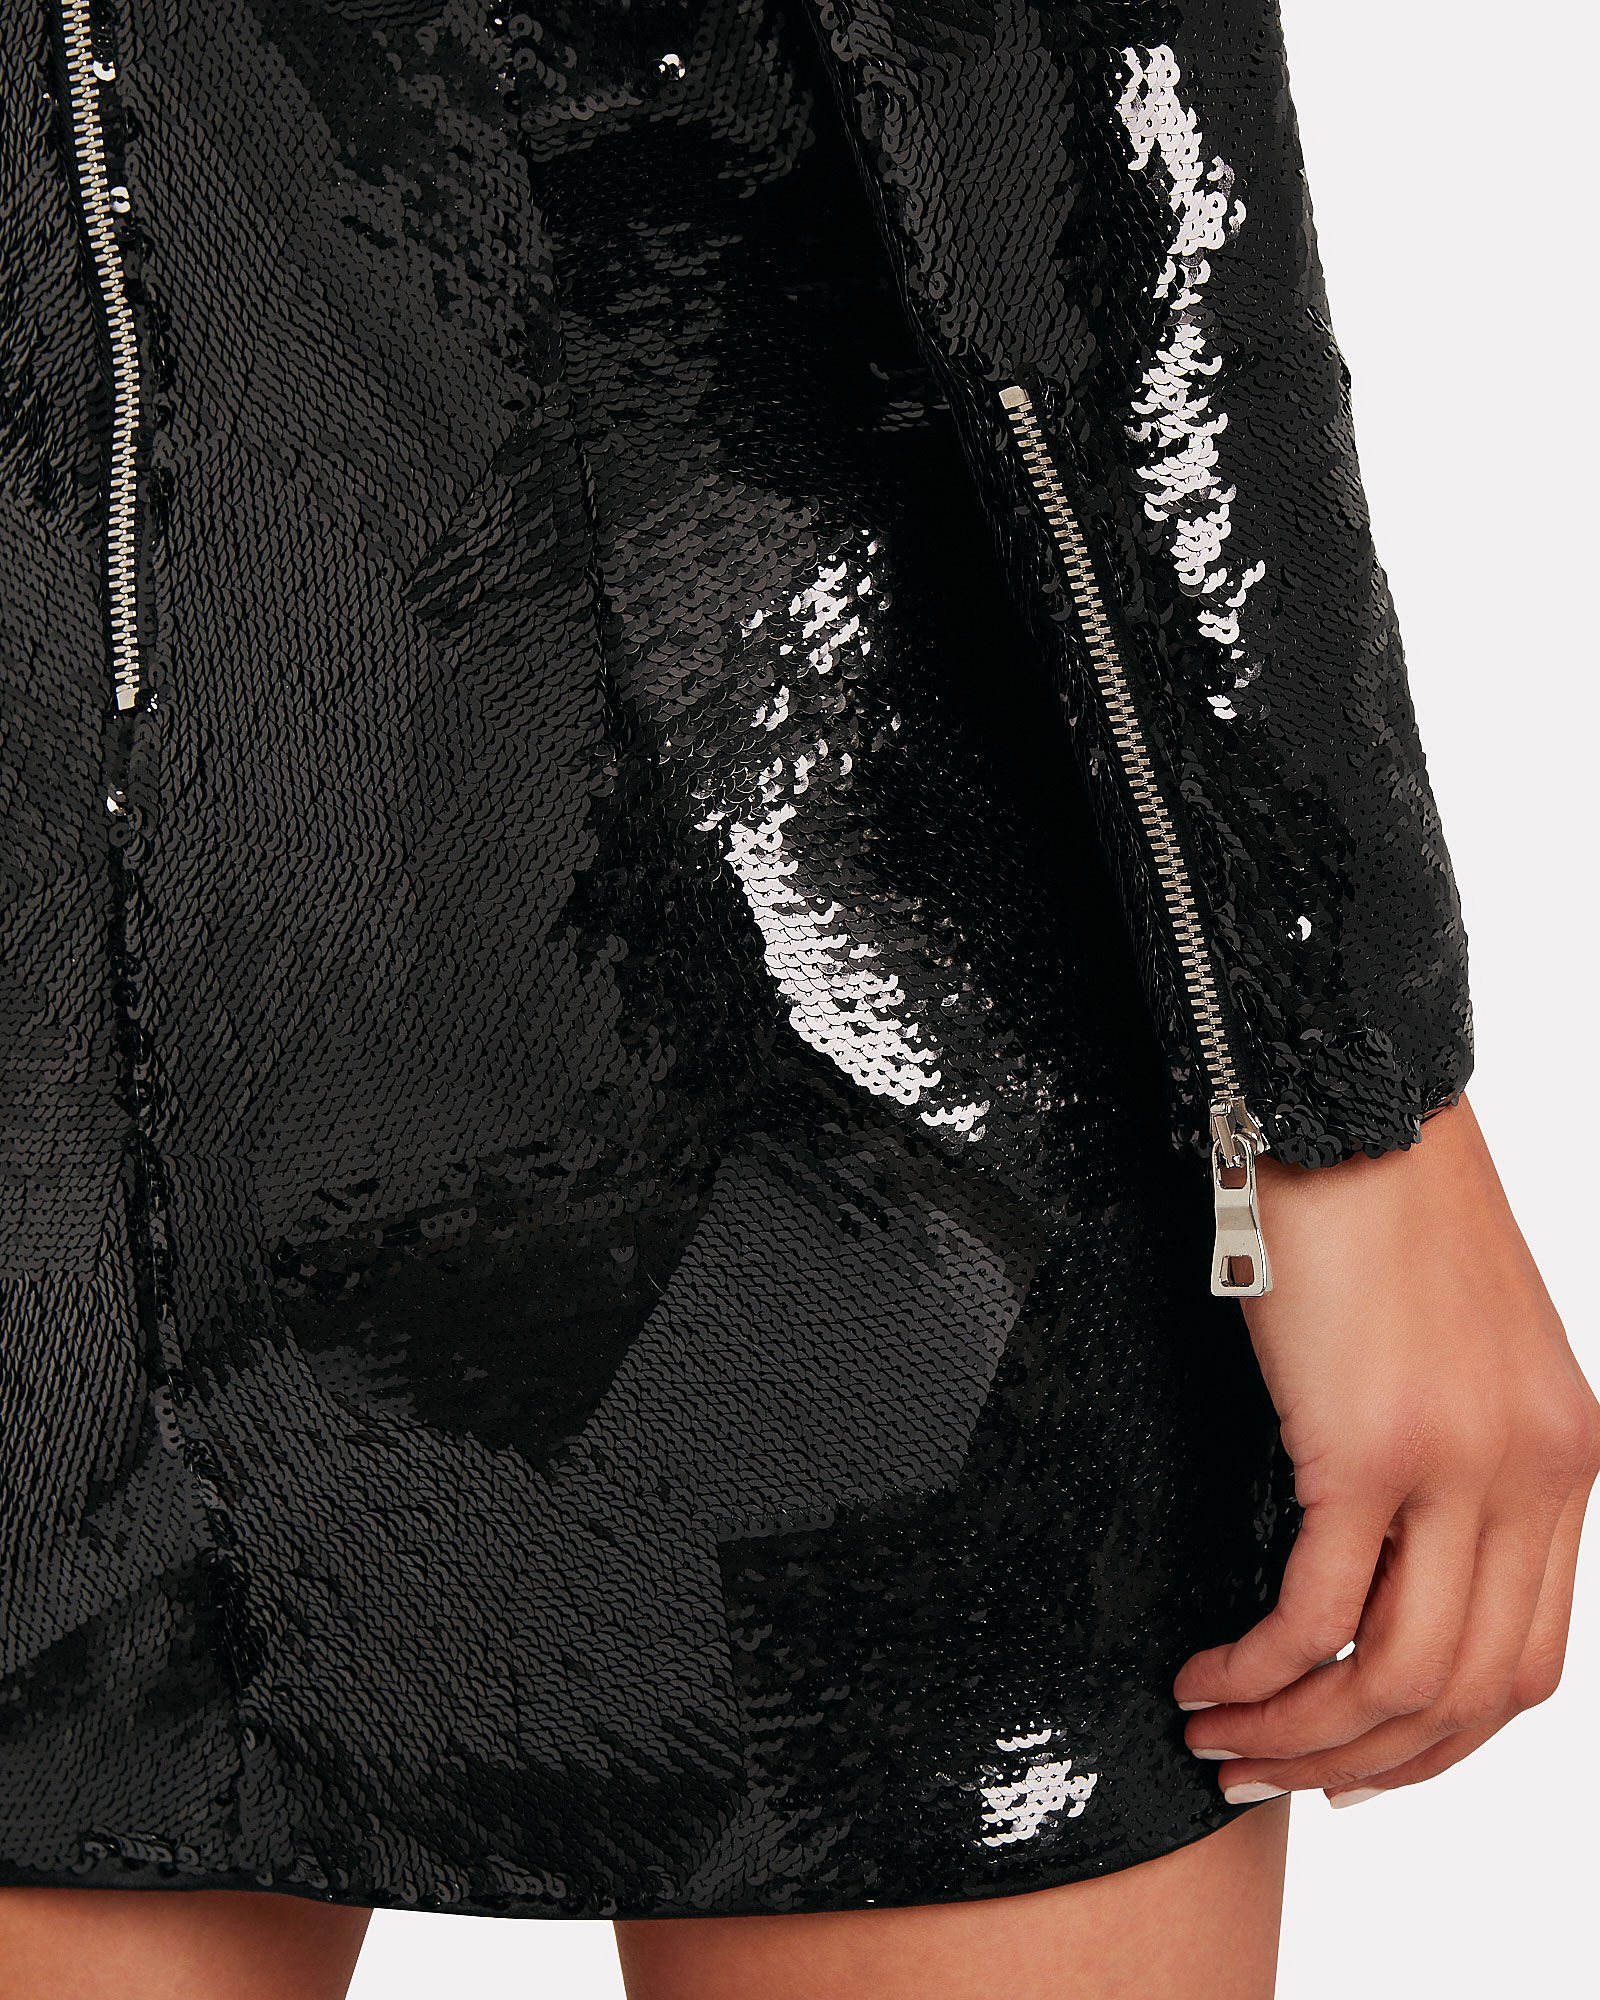 Sequin-Embellished Mini Dress, BLACK, hi-res